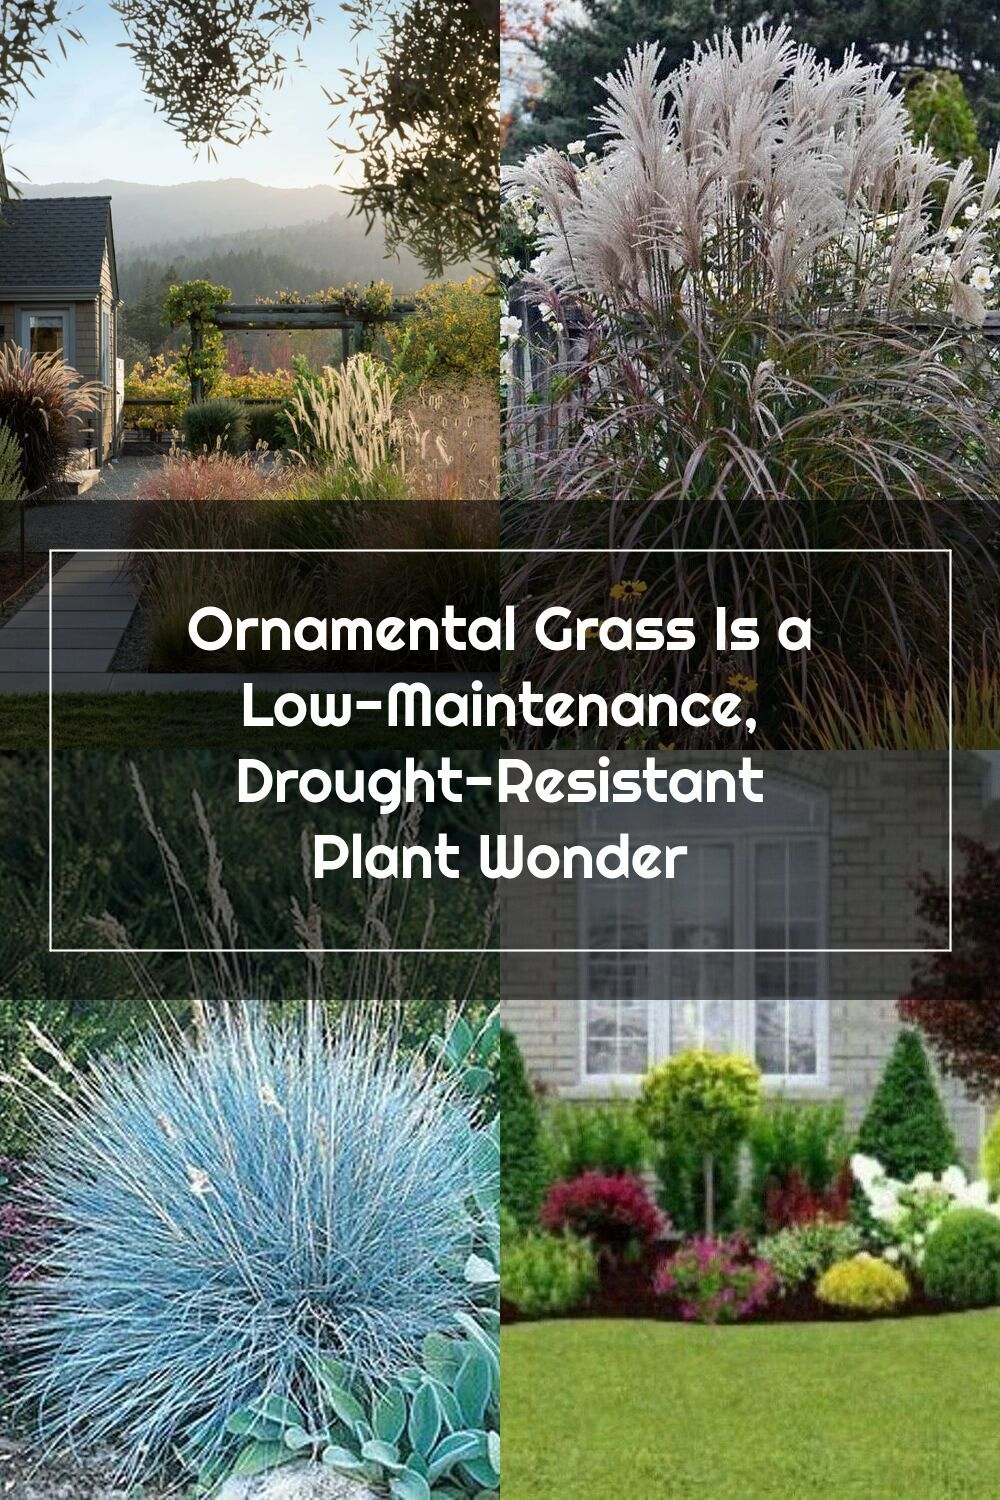 Ornamental Grass Is a LowMaintenance, DroughtResistant